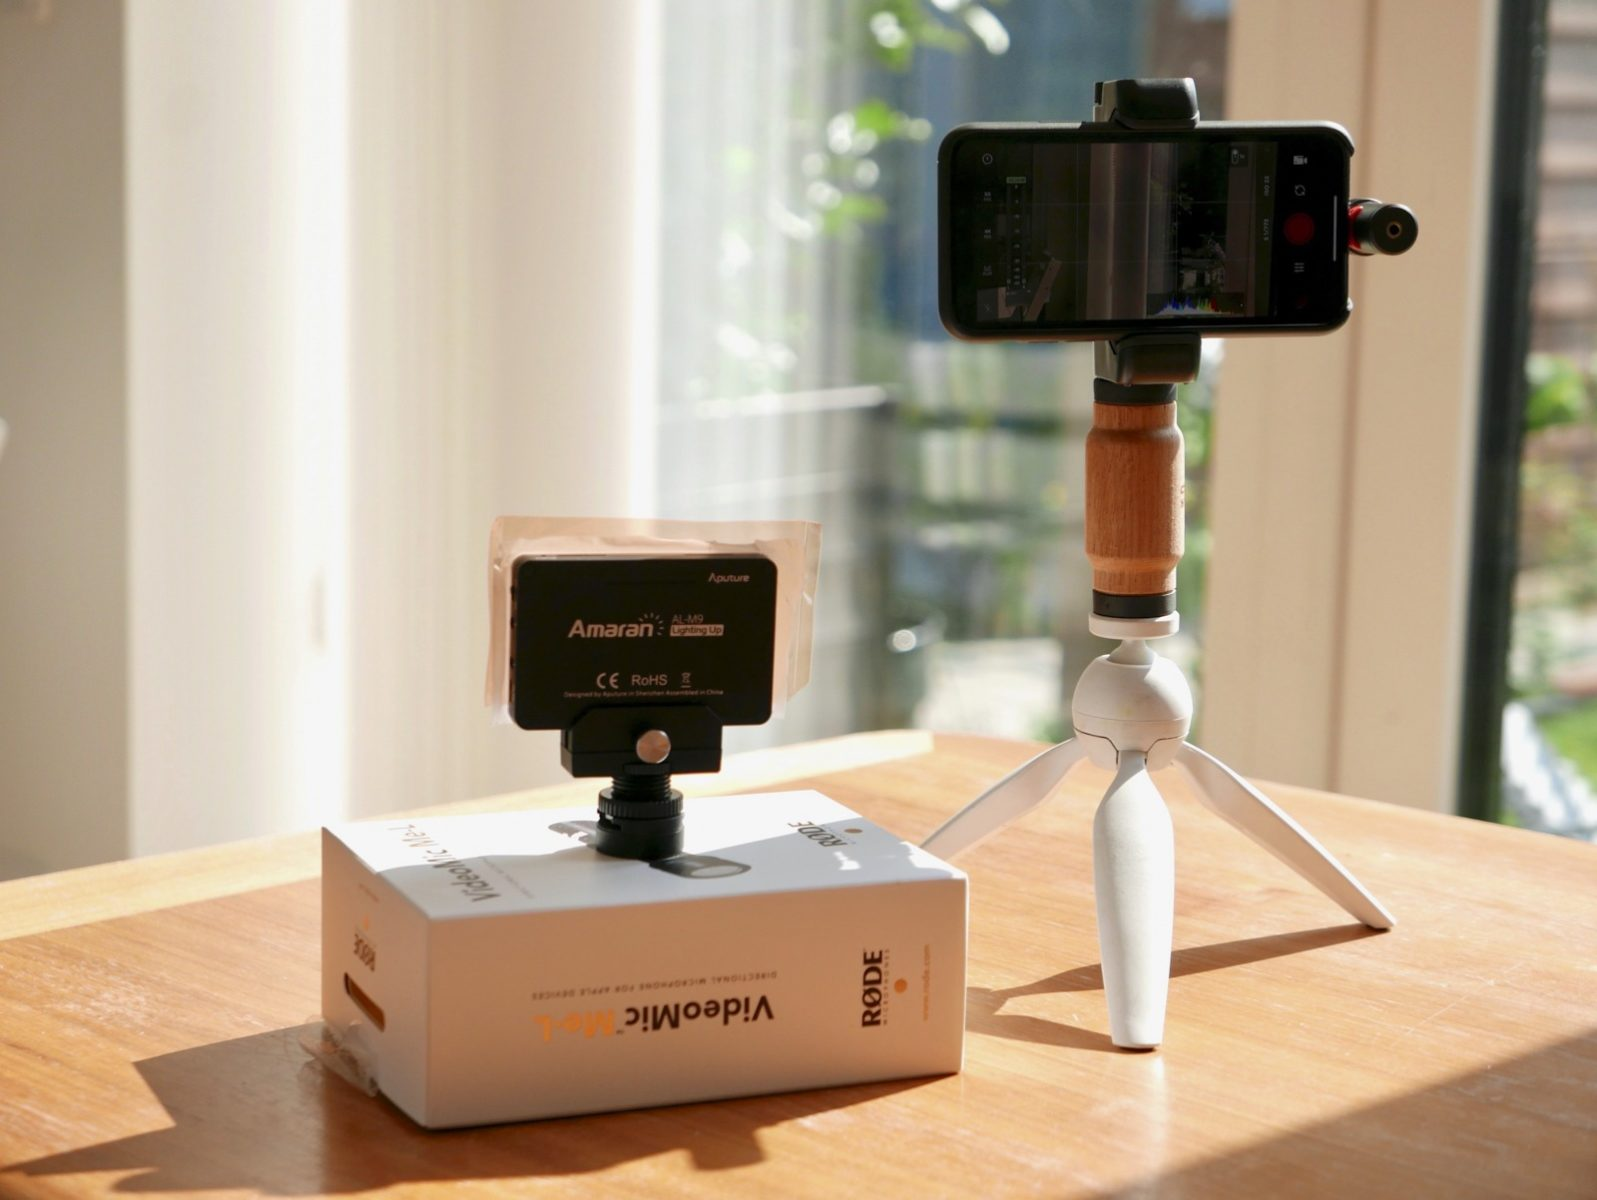 A nice, little smartphone photography/videography rig